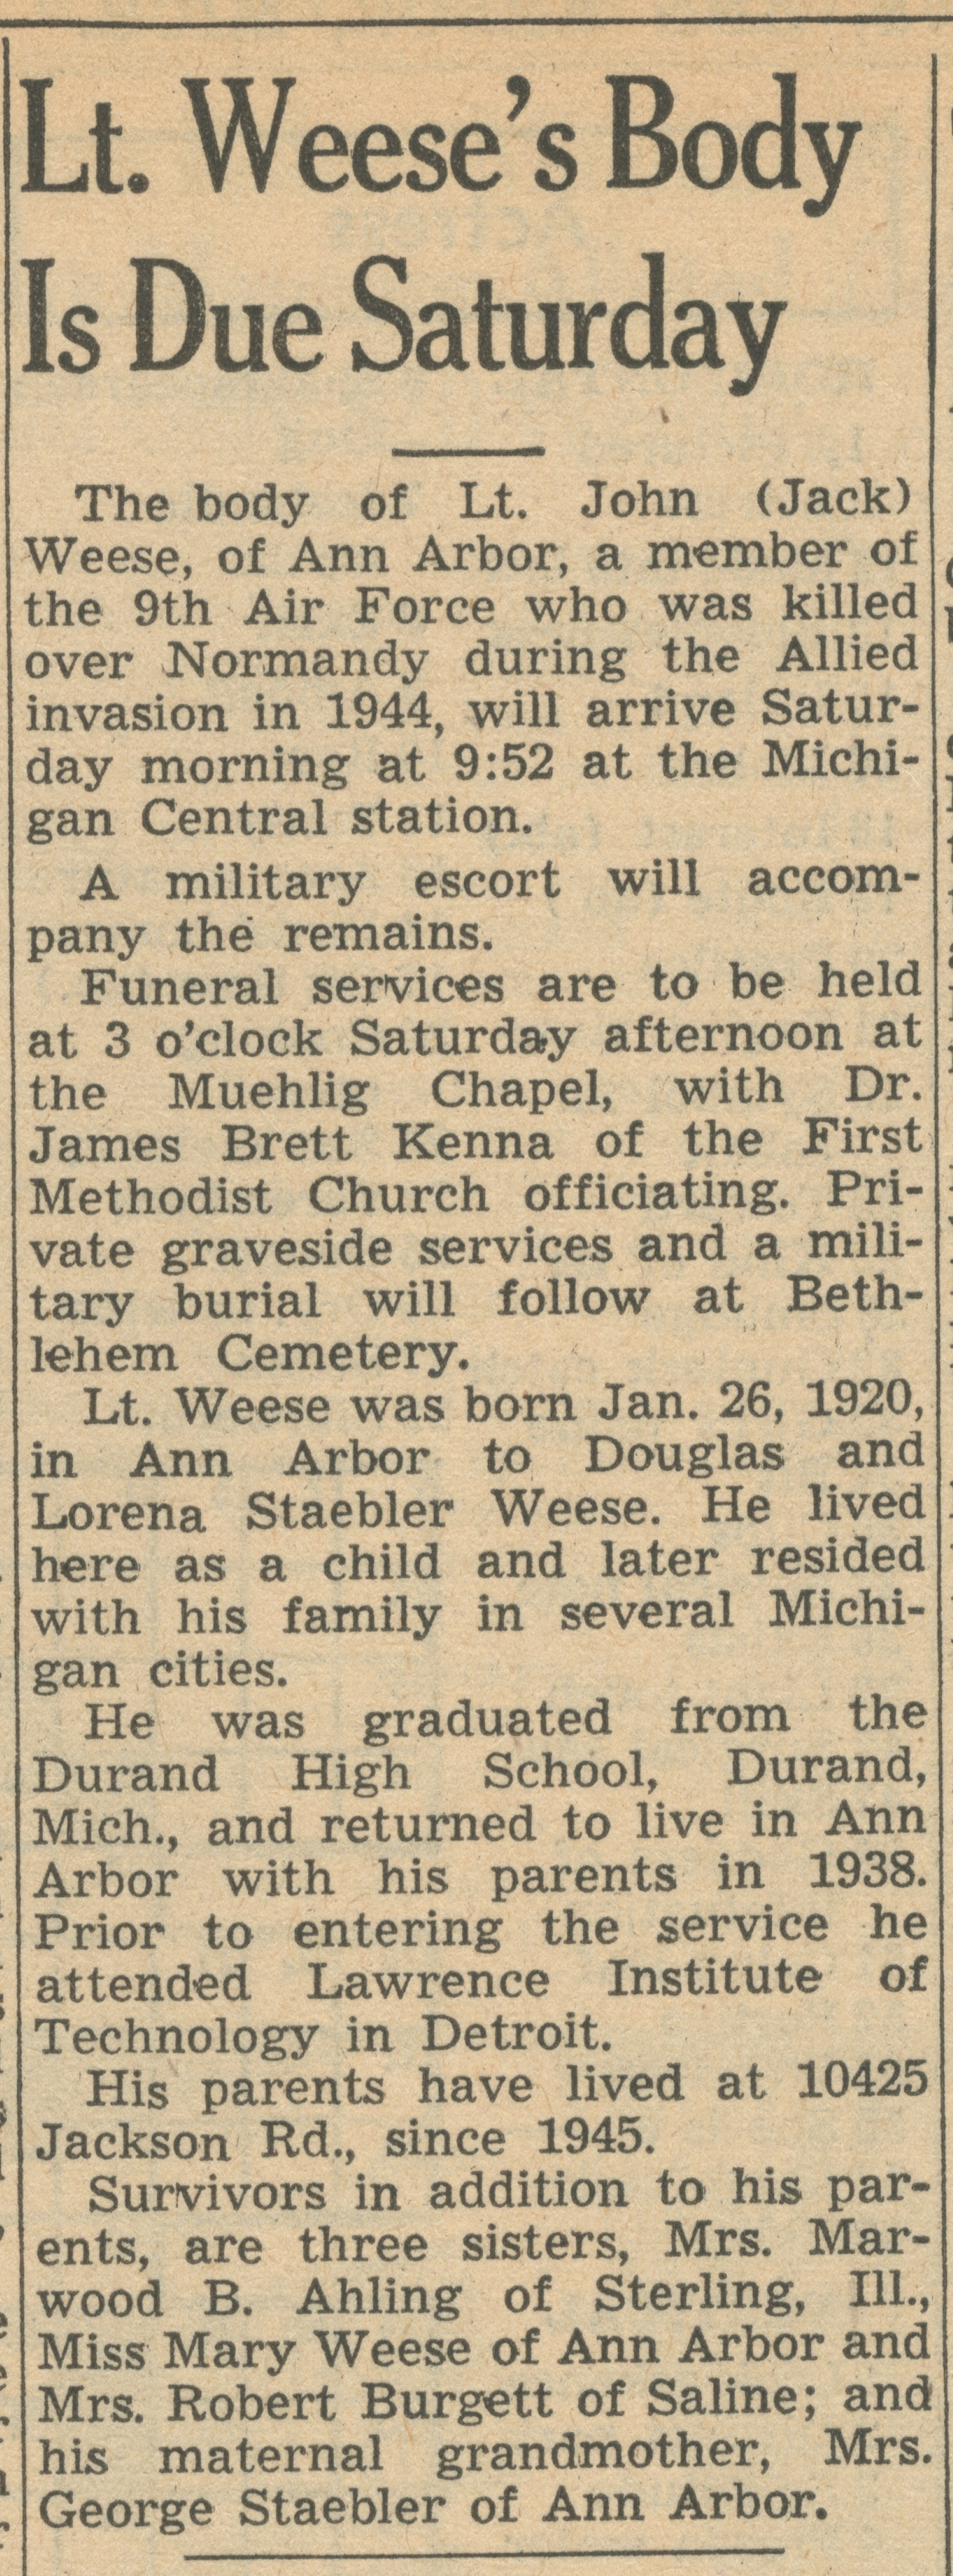 Lt. Weese's Body Is Due Saturday image